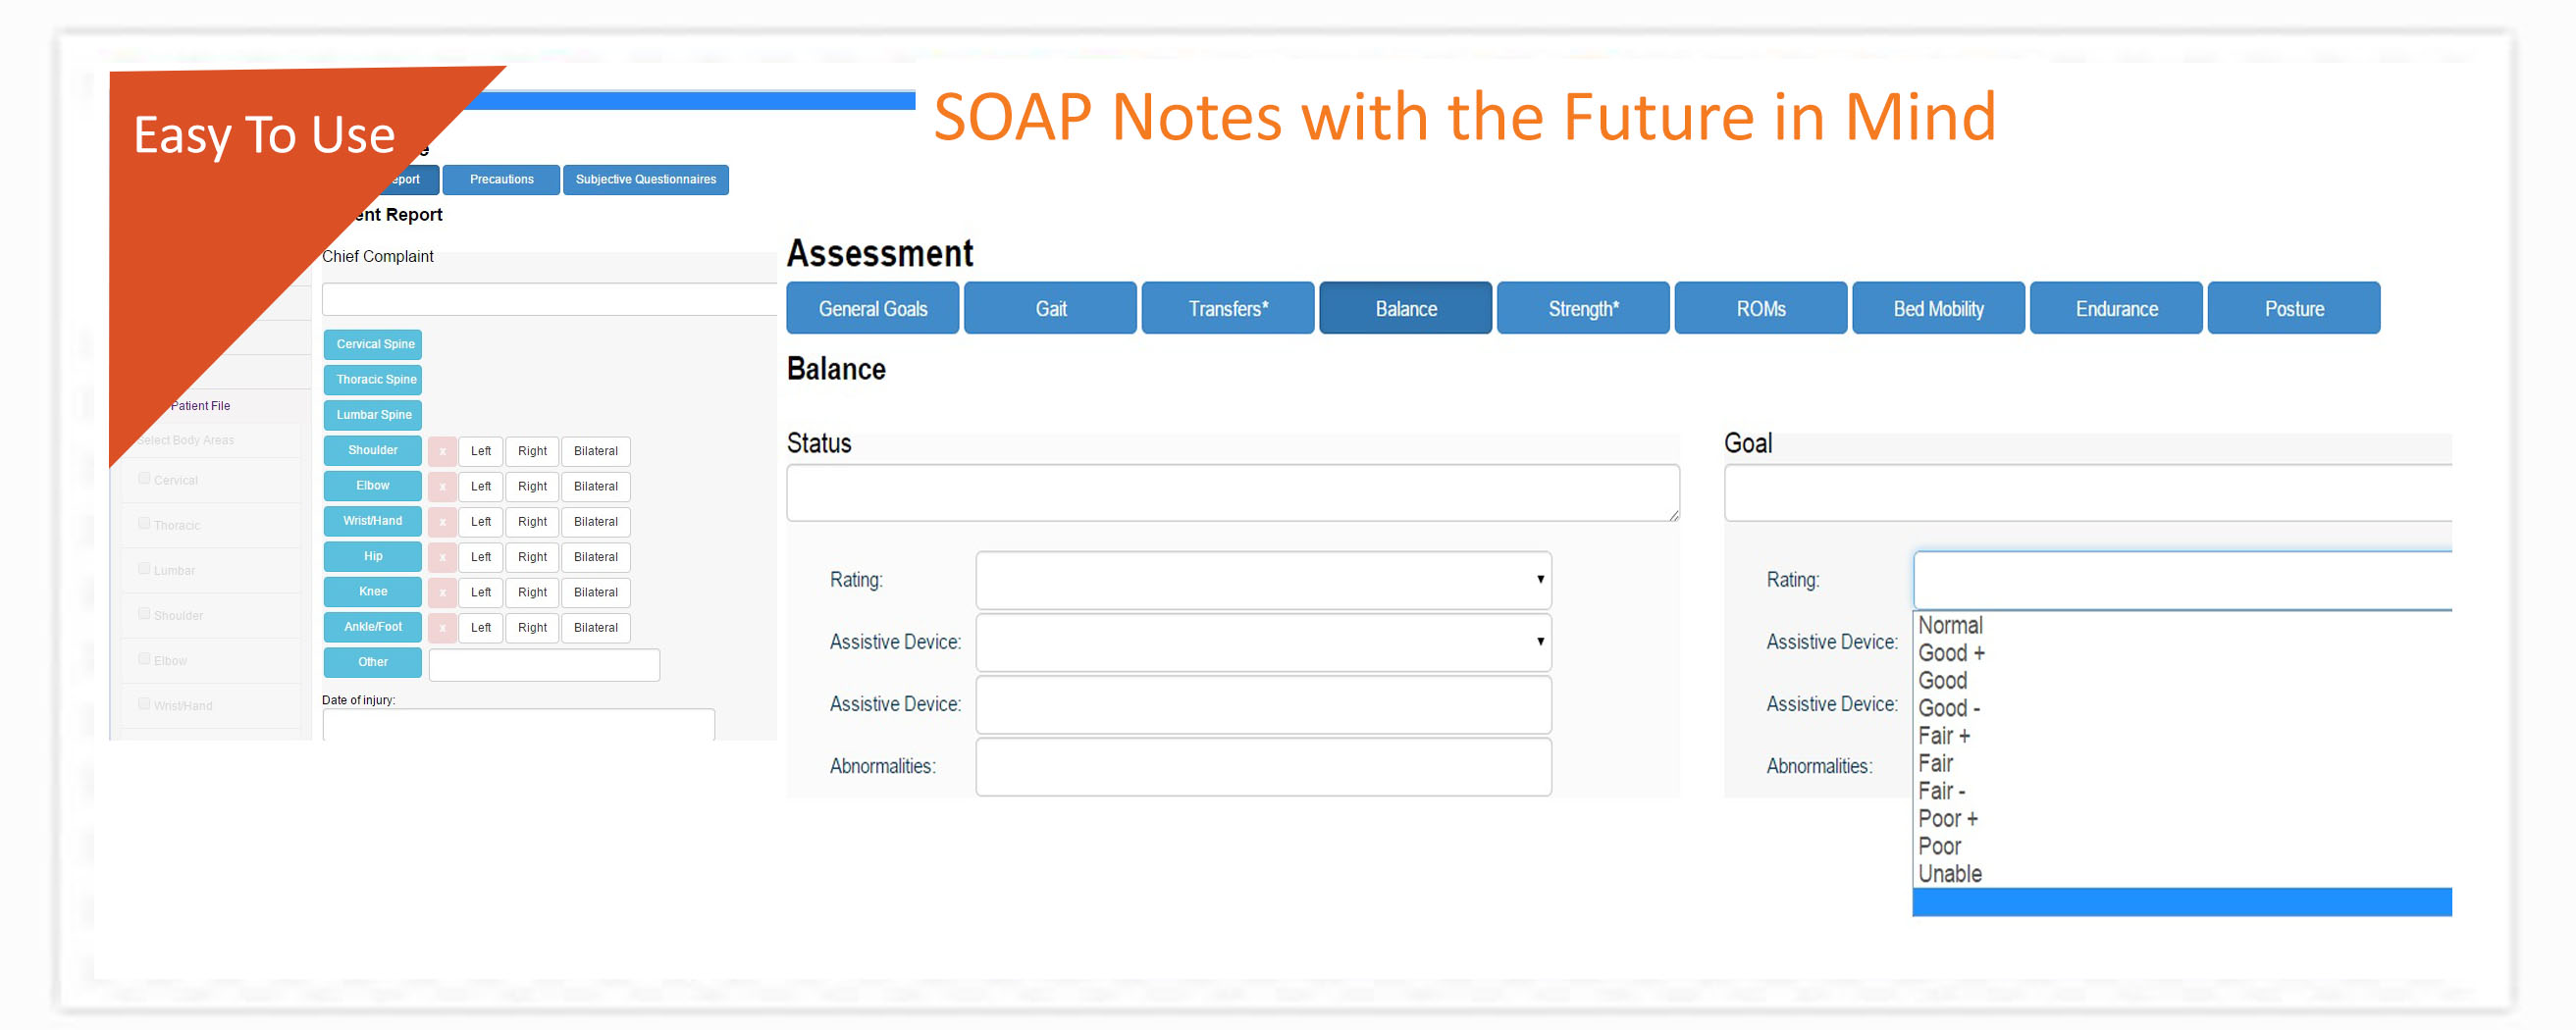 Physical Therapy Documentation and Soap Notes for the future